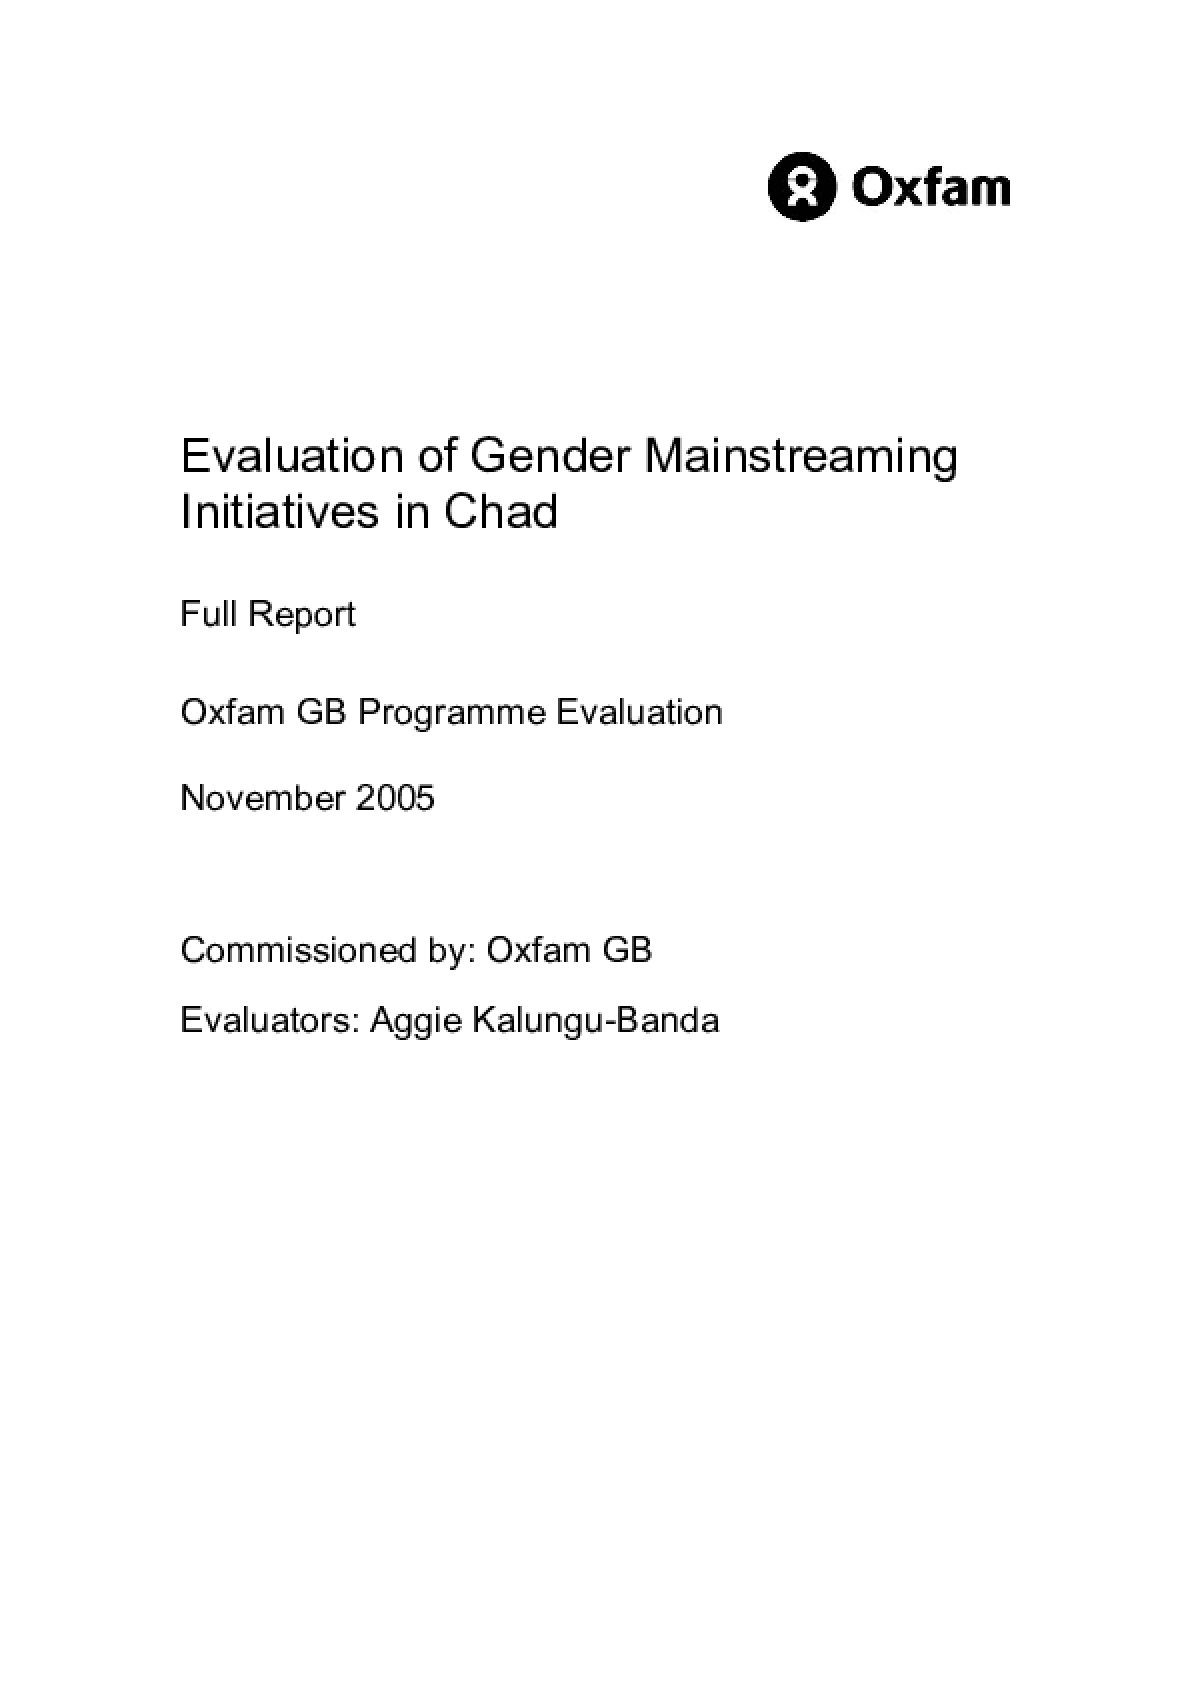 Evaluation of Gender Mainstreaming Initiatives in Chad